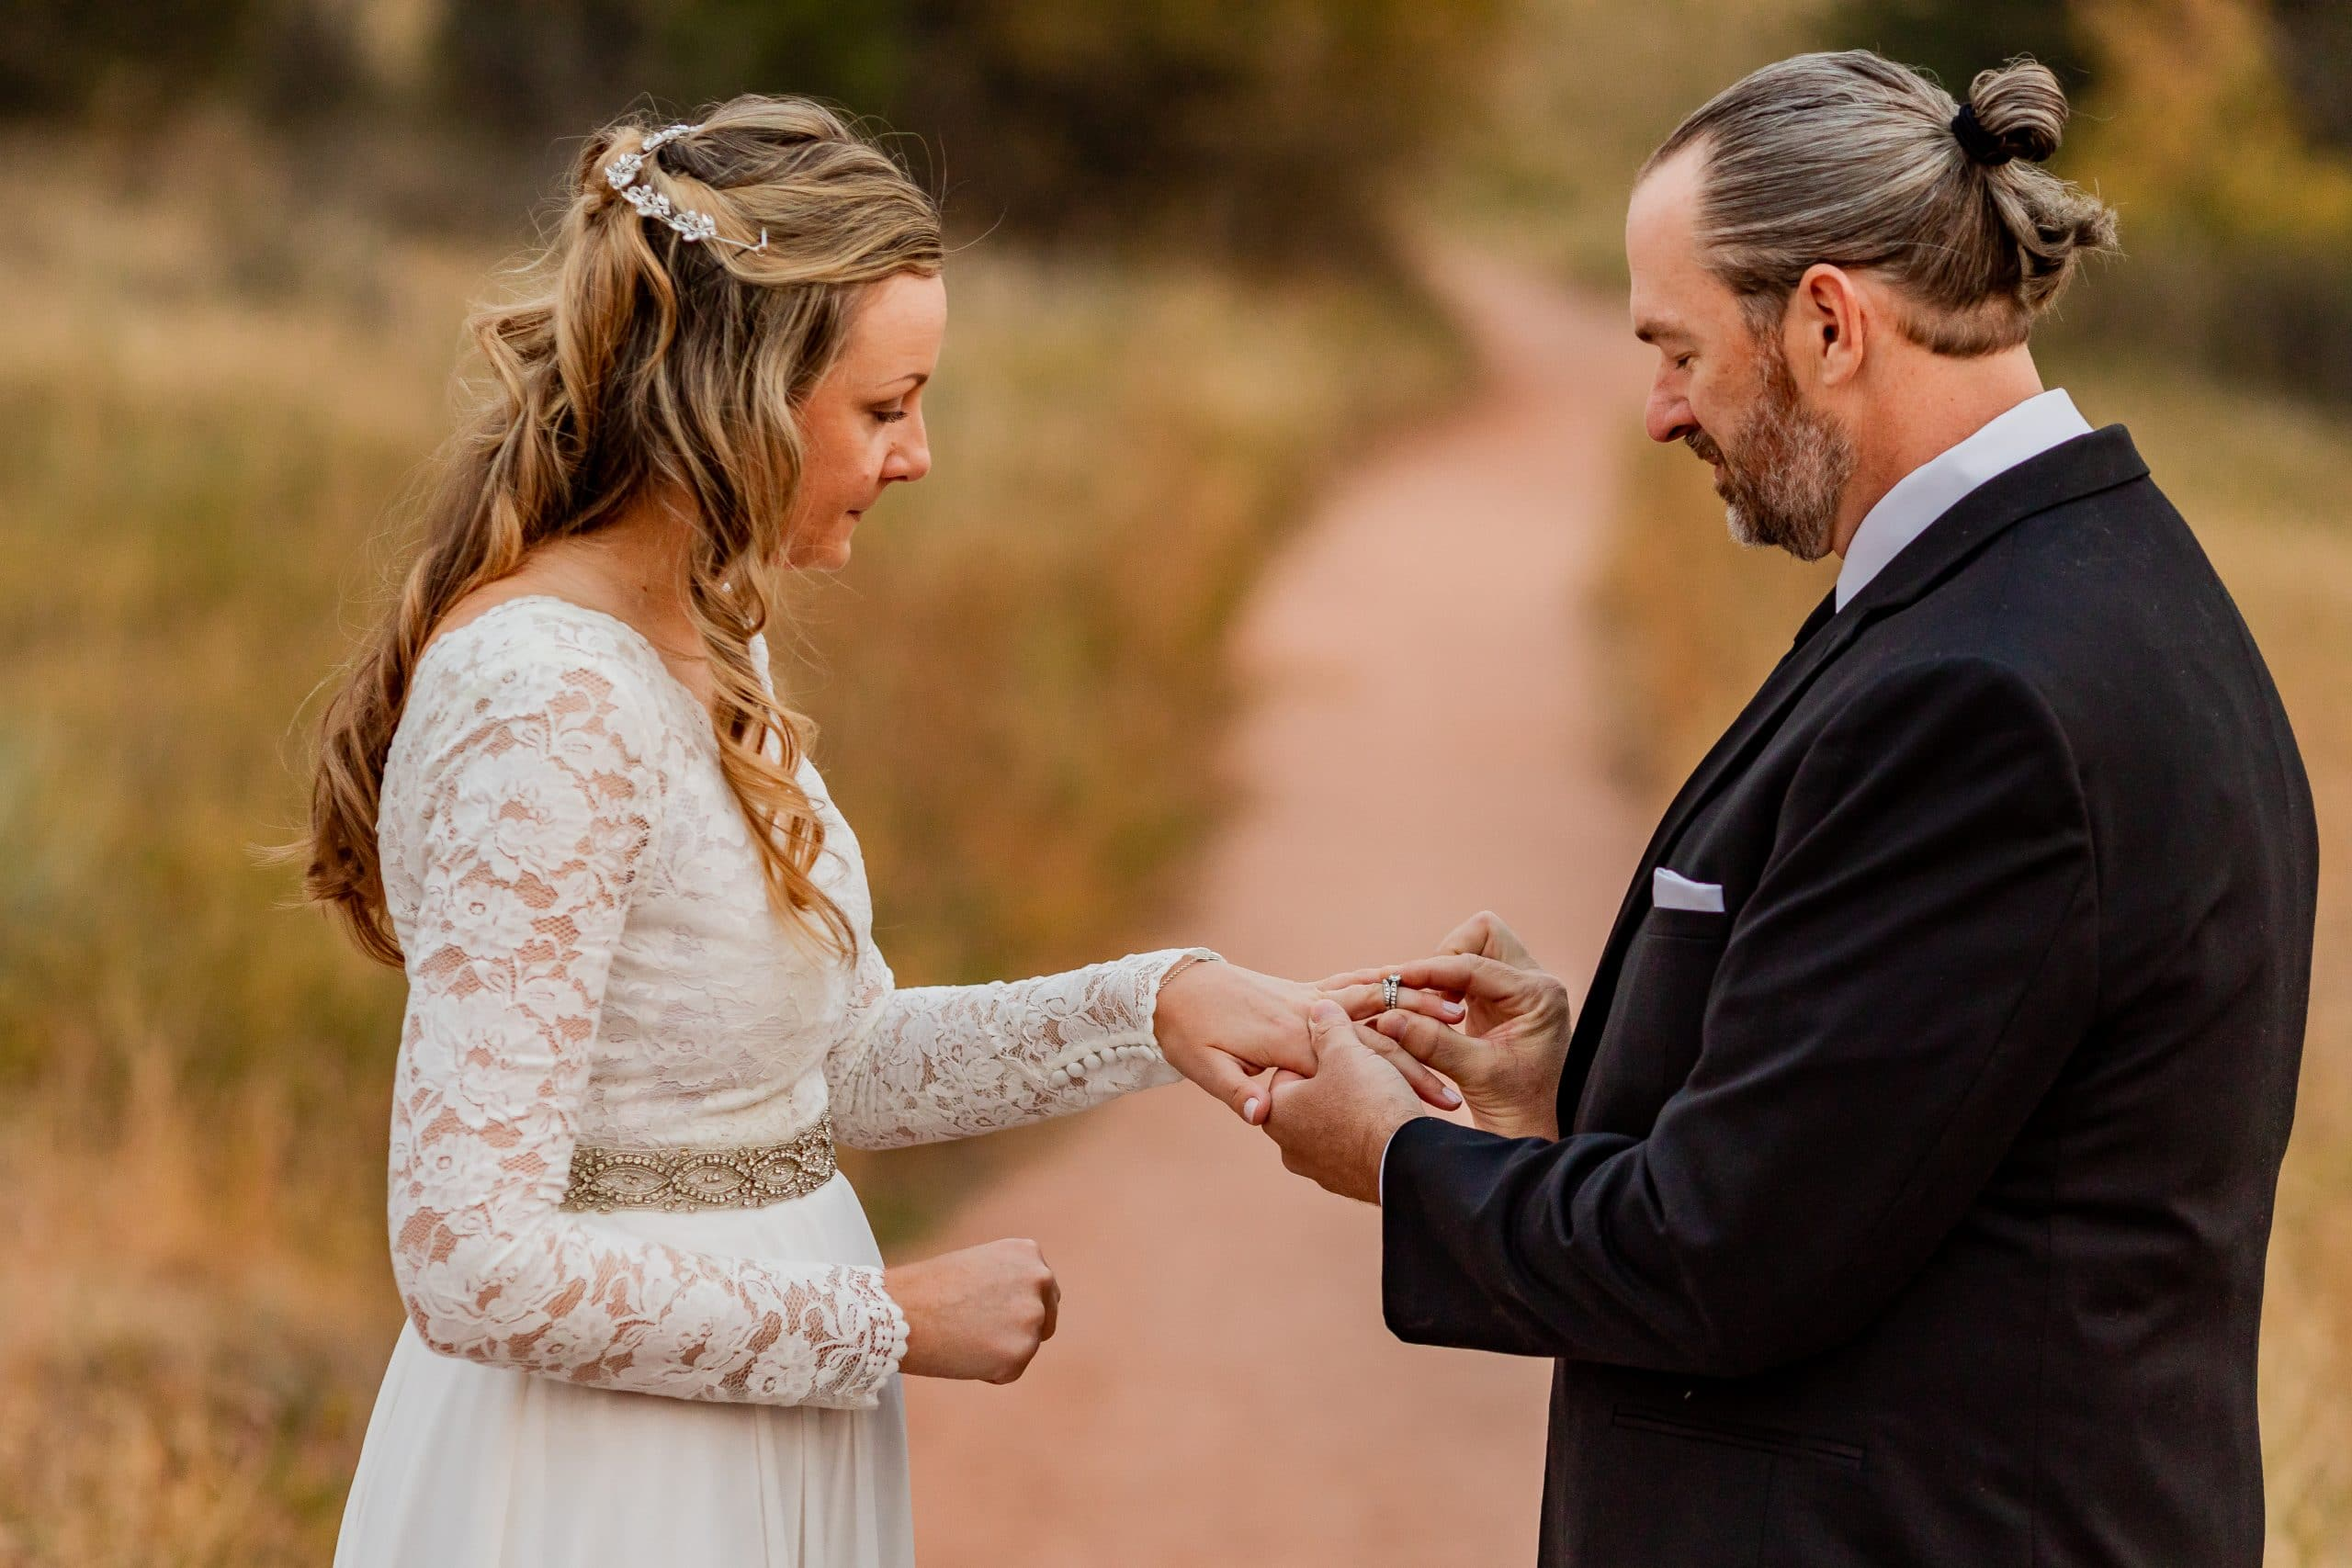 Exchanging Rings at Garden of the Gods during an elopement